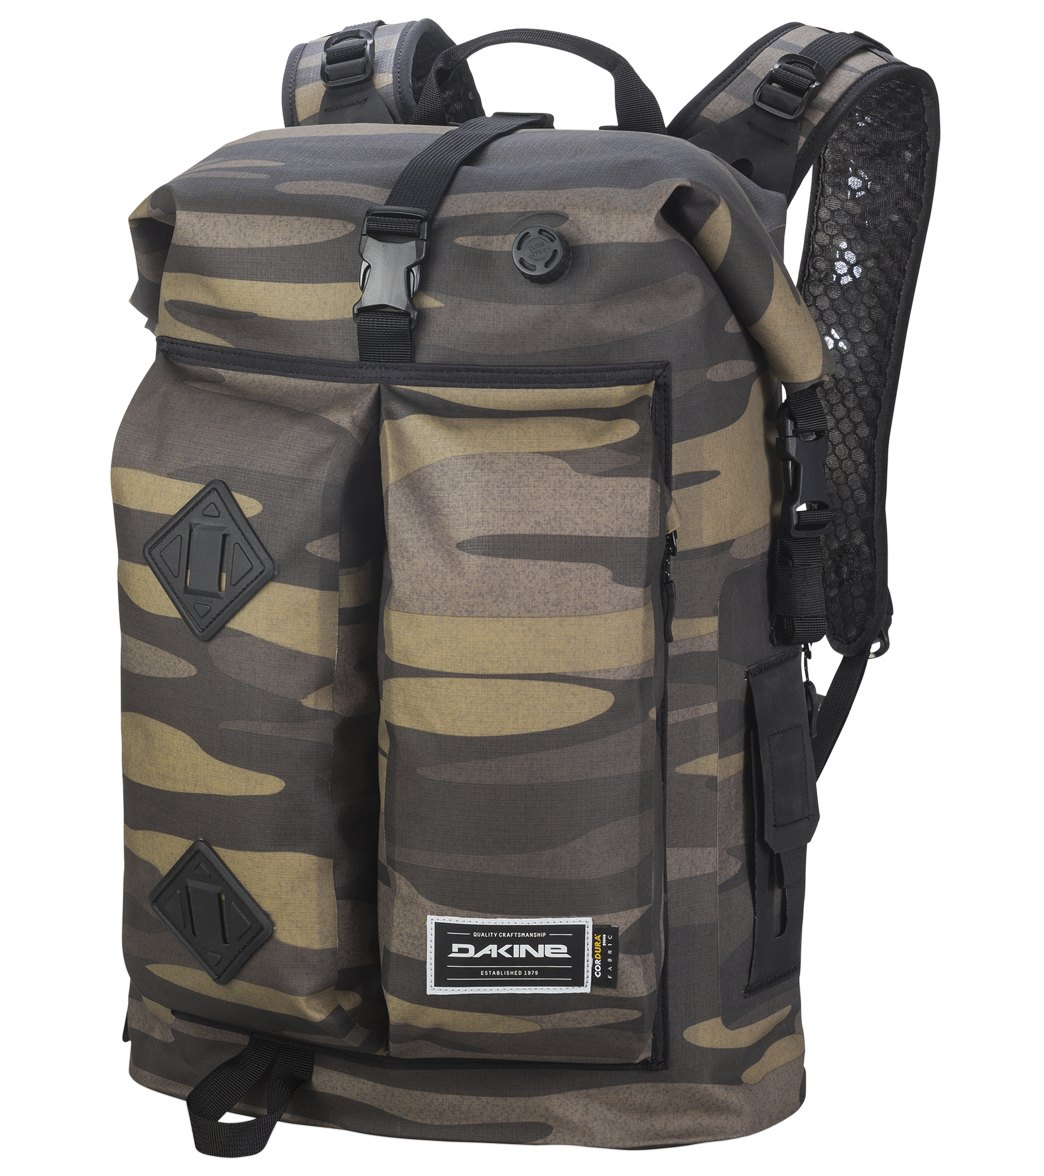 Dakine Cyclone II Dry Pack 36L Backpack at SwimOutlet.com - Free ... c27f9cf4ea